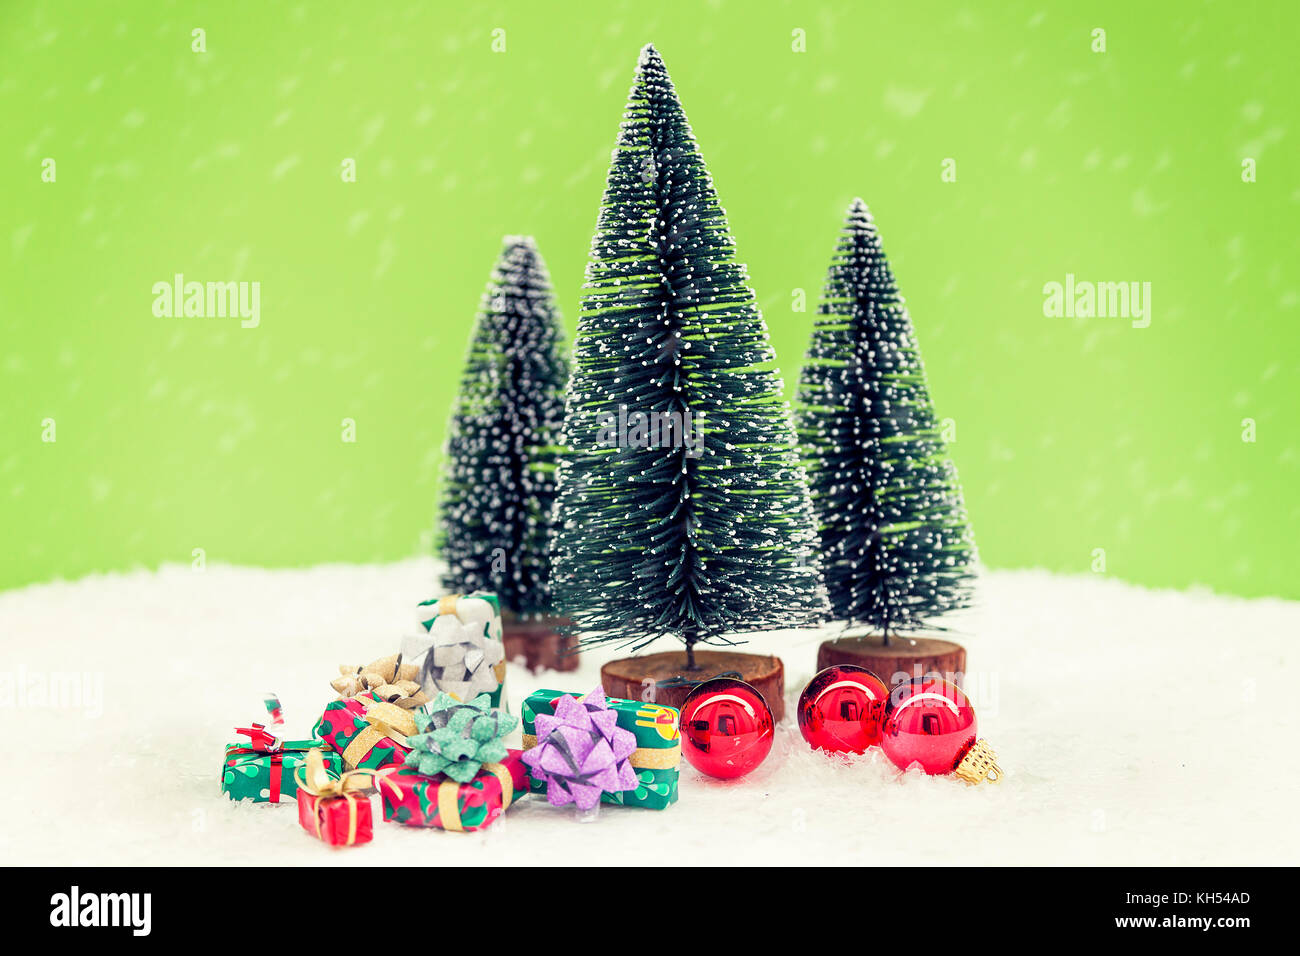 Wooden Toy Trees On Table Stock Photos & Wooden Toy Trees On Table ...